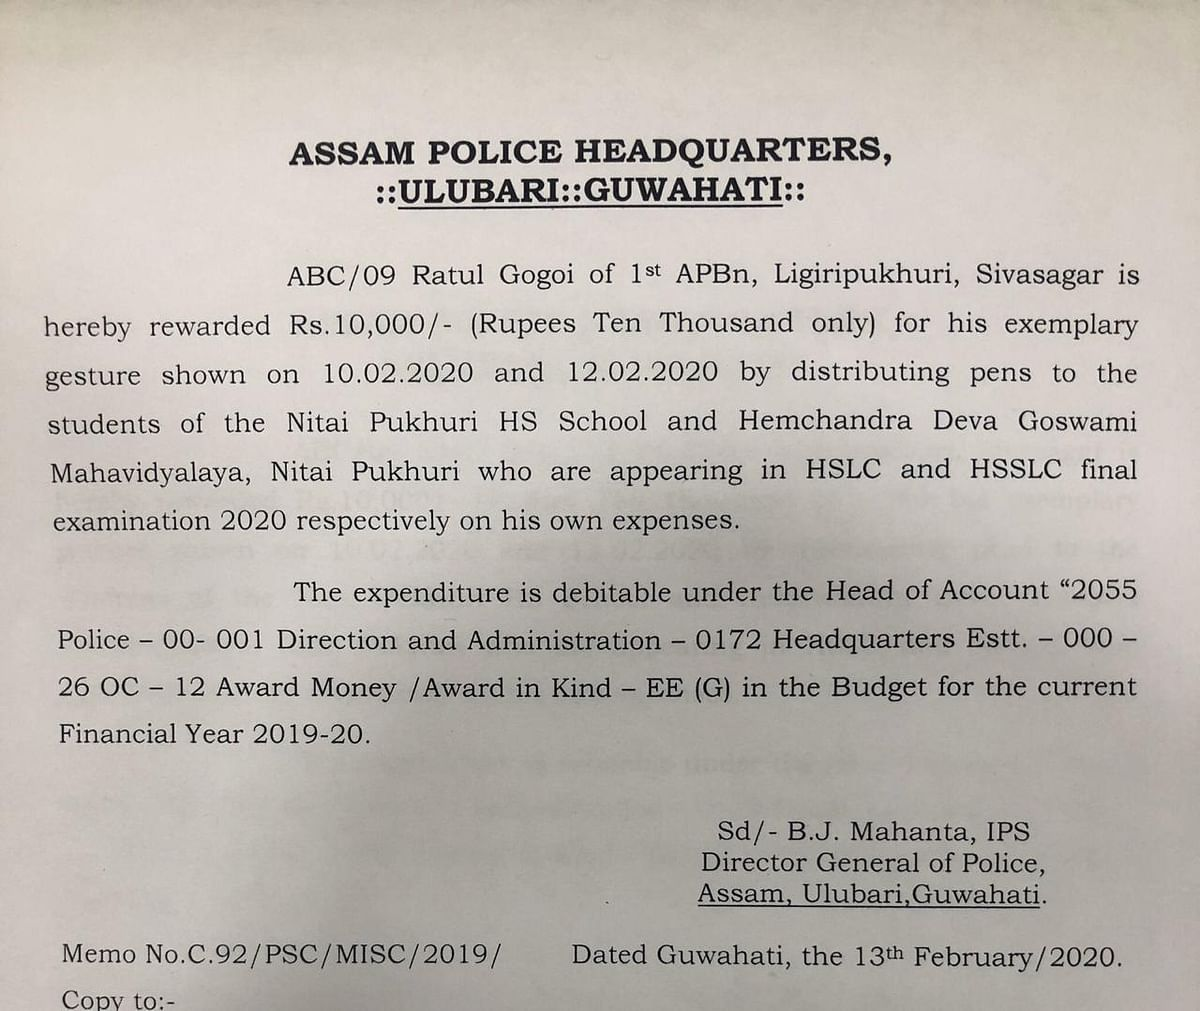 Official letter issued by Assam Police headquarters